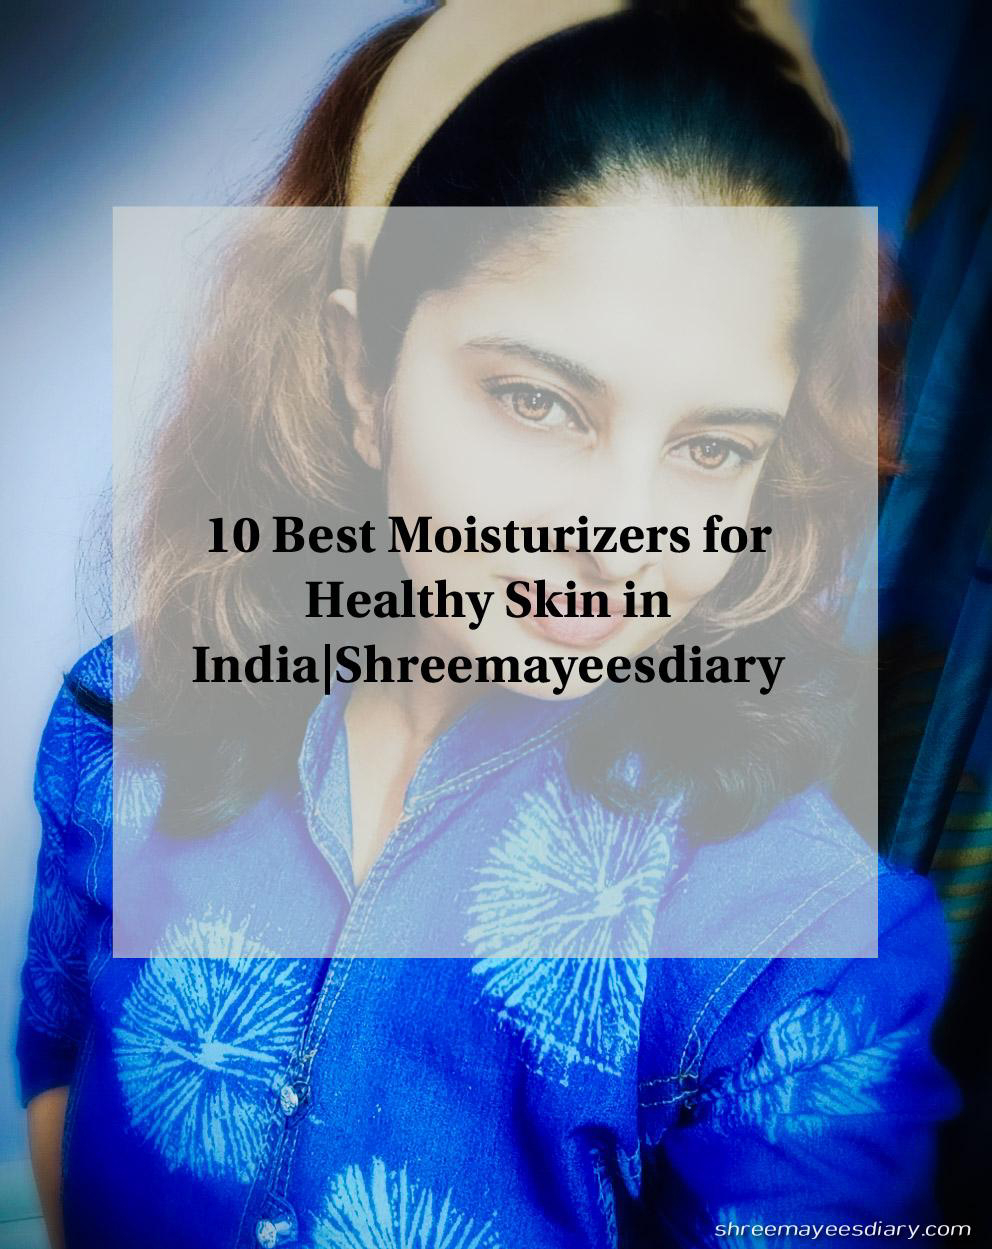 Moisturizers, top 10, healthy skin